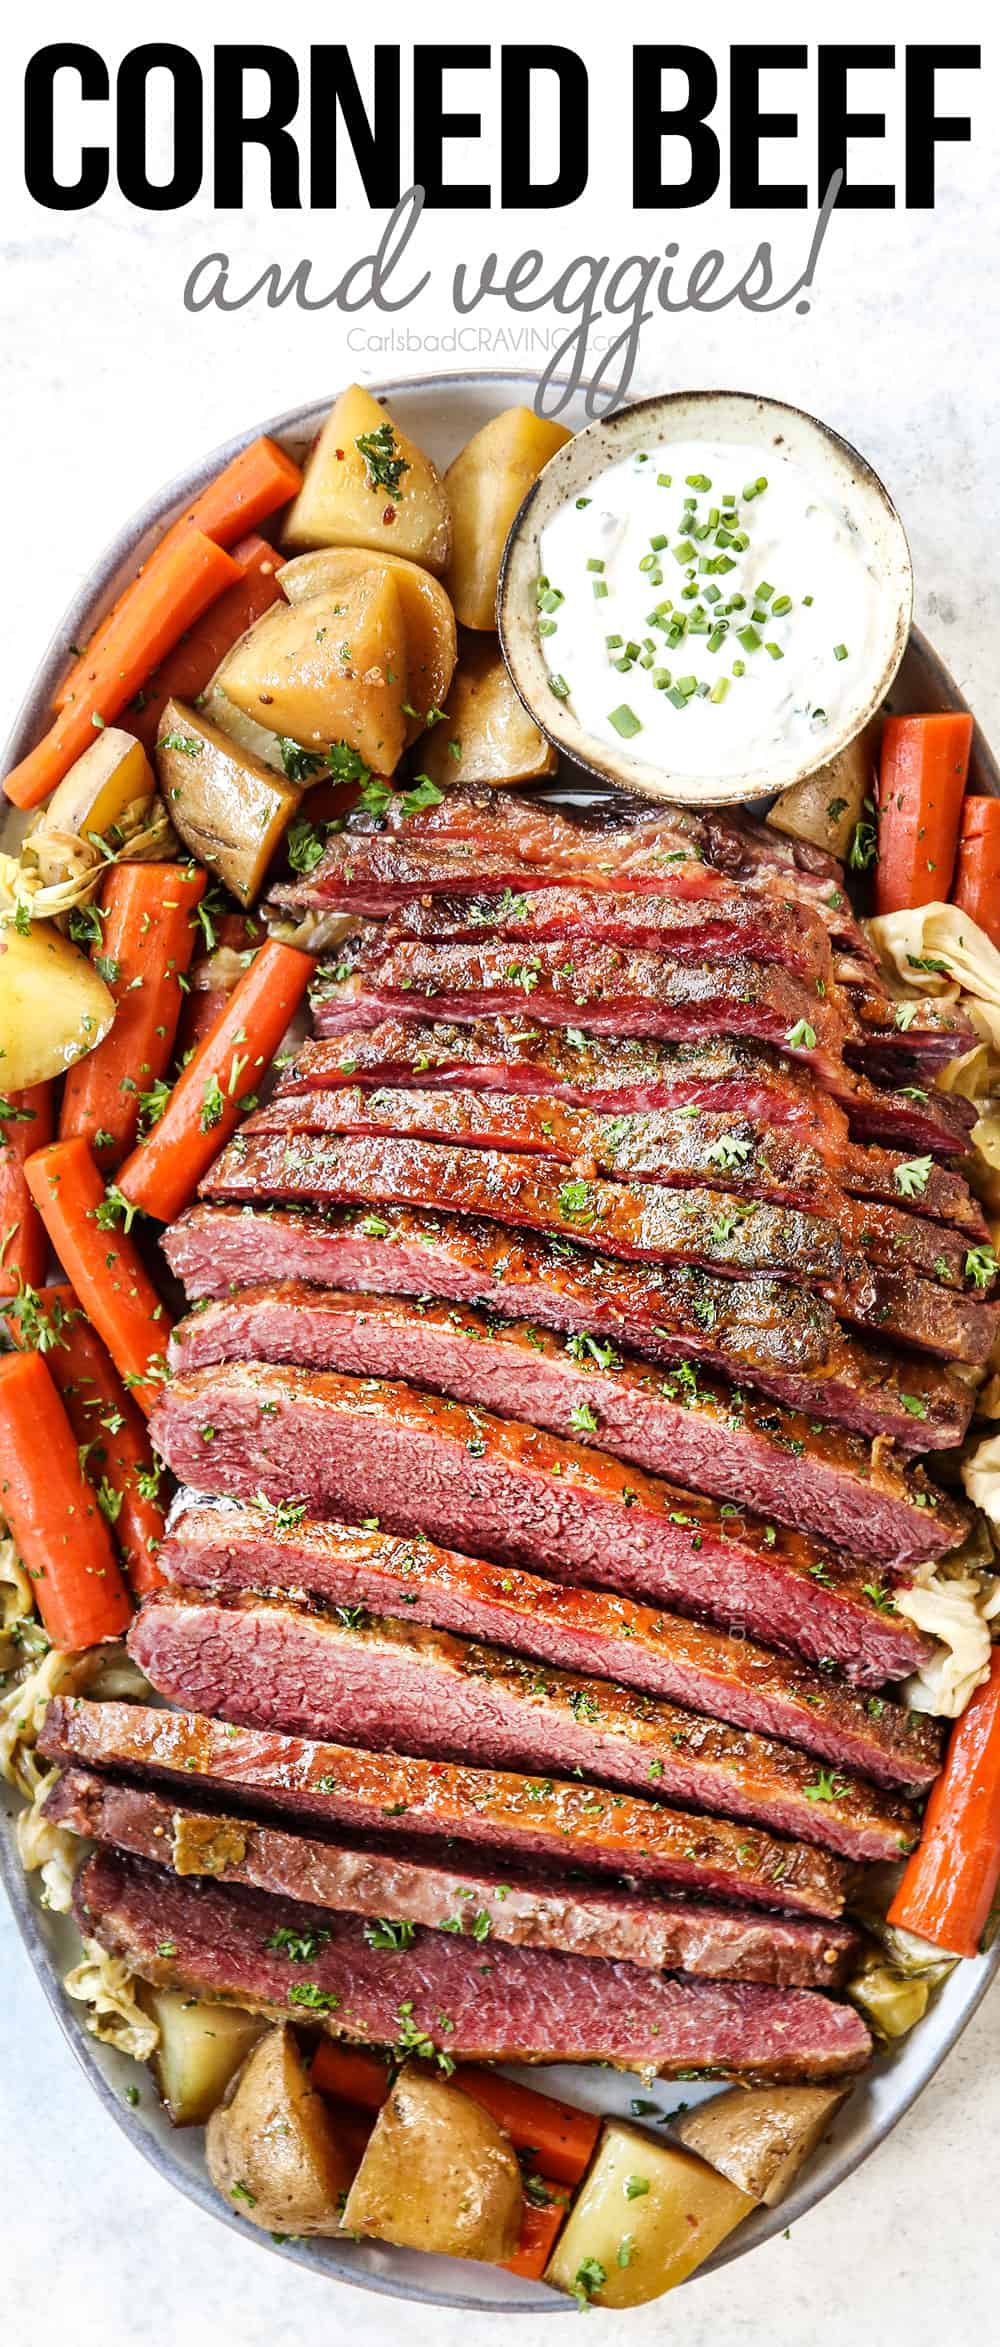 top view of corned beef and cabbage on a platter with potatoes, carrots and horseradish sauce